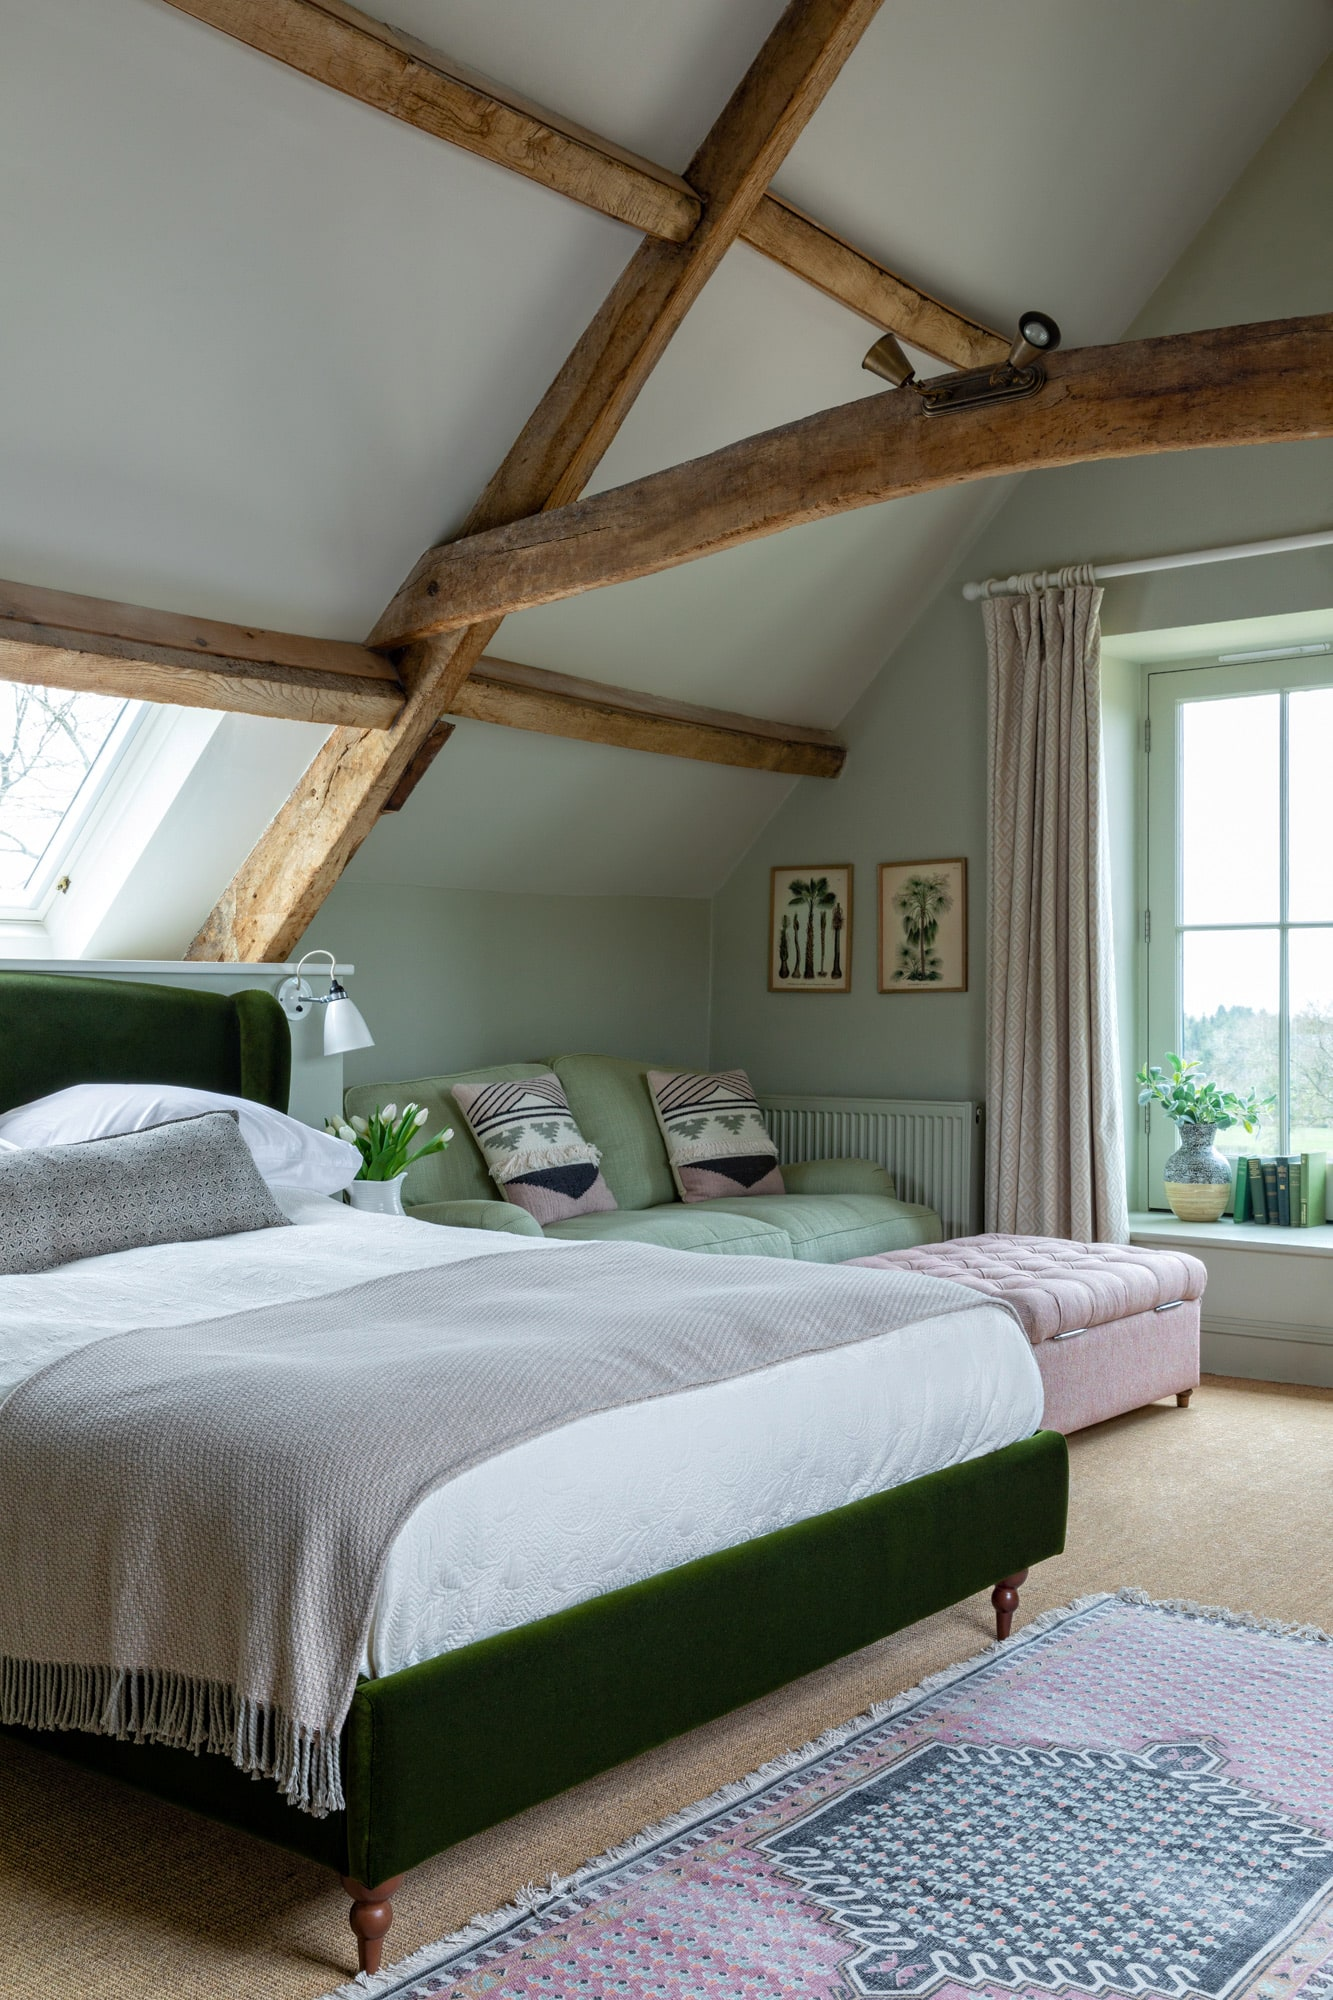 renovated barn bedroom: olive green walls; dark green velvet bed with white linen; bedside table with a vase of tulips; light green sofa and pink soft stool